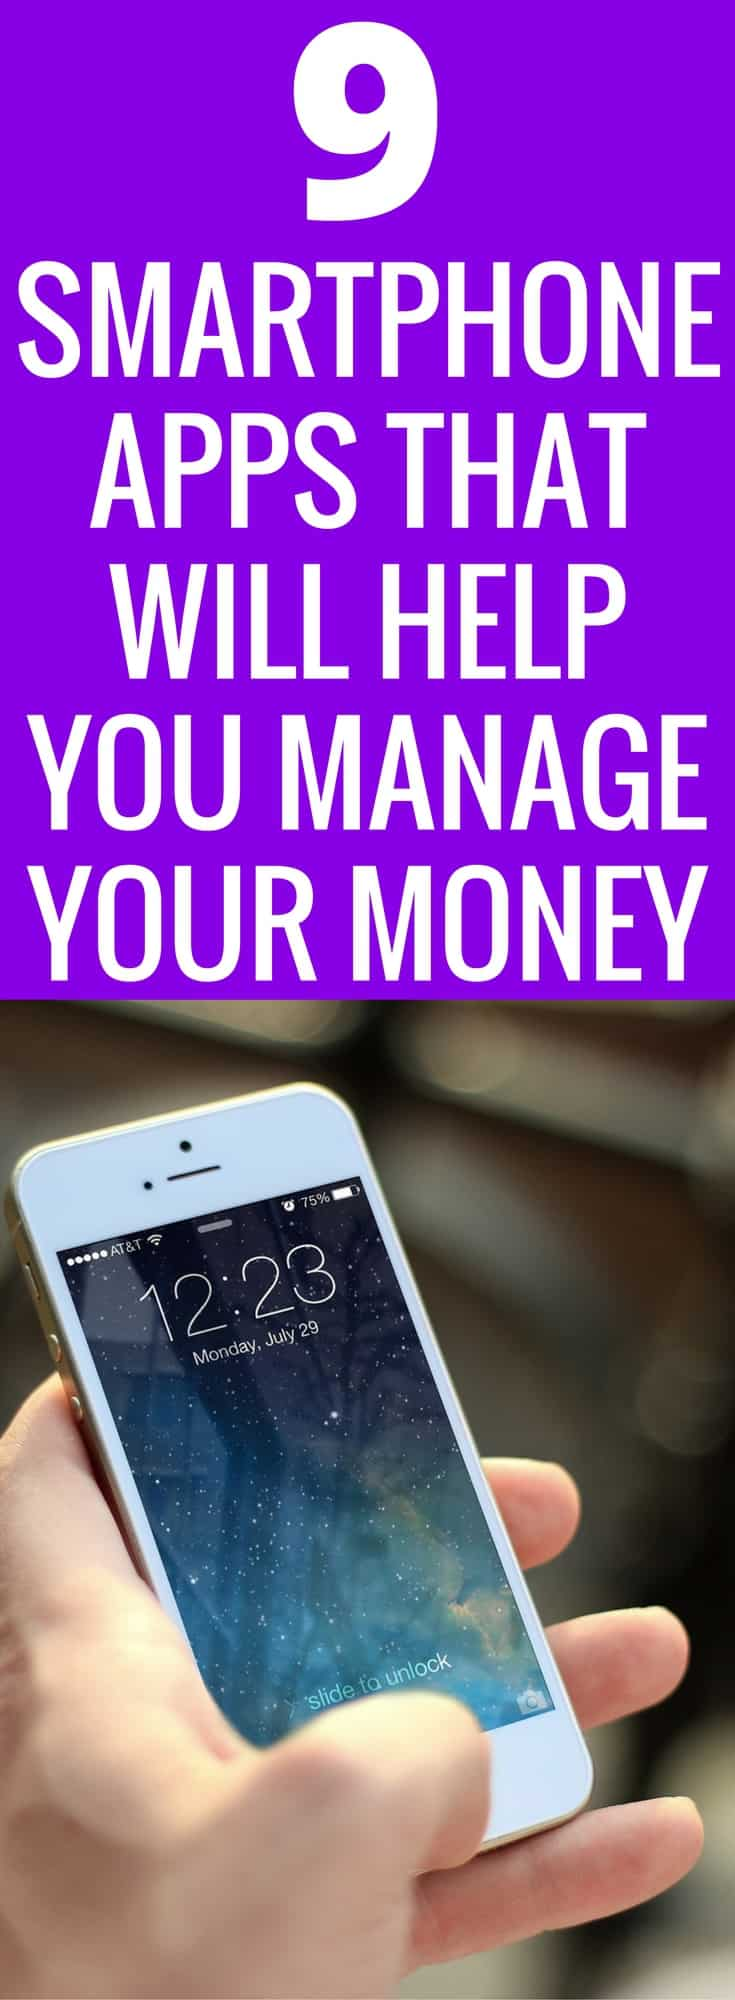 Managing money can be hard! Gone are the days of balancing the checkbook and keeping receipts tracked. We are living in the 21st century, we all have smartphones. The convince to manage our money better is literally at our fingertips! Here are 9 Smartphone apps that will help you budget and save your money. Make money work for you! Budget | Save Money | Smartphone App | Ibotta | Mint | Finances | Money Management | Invest |